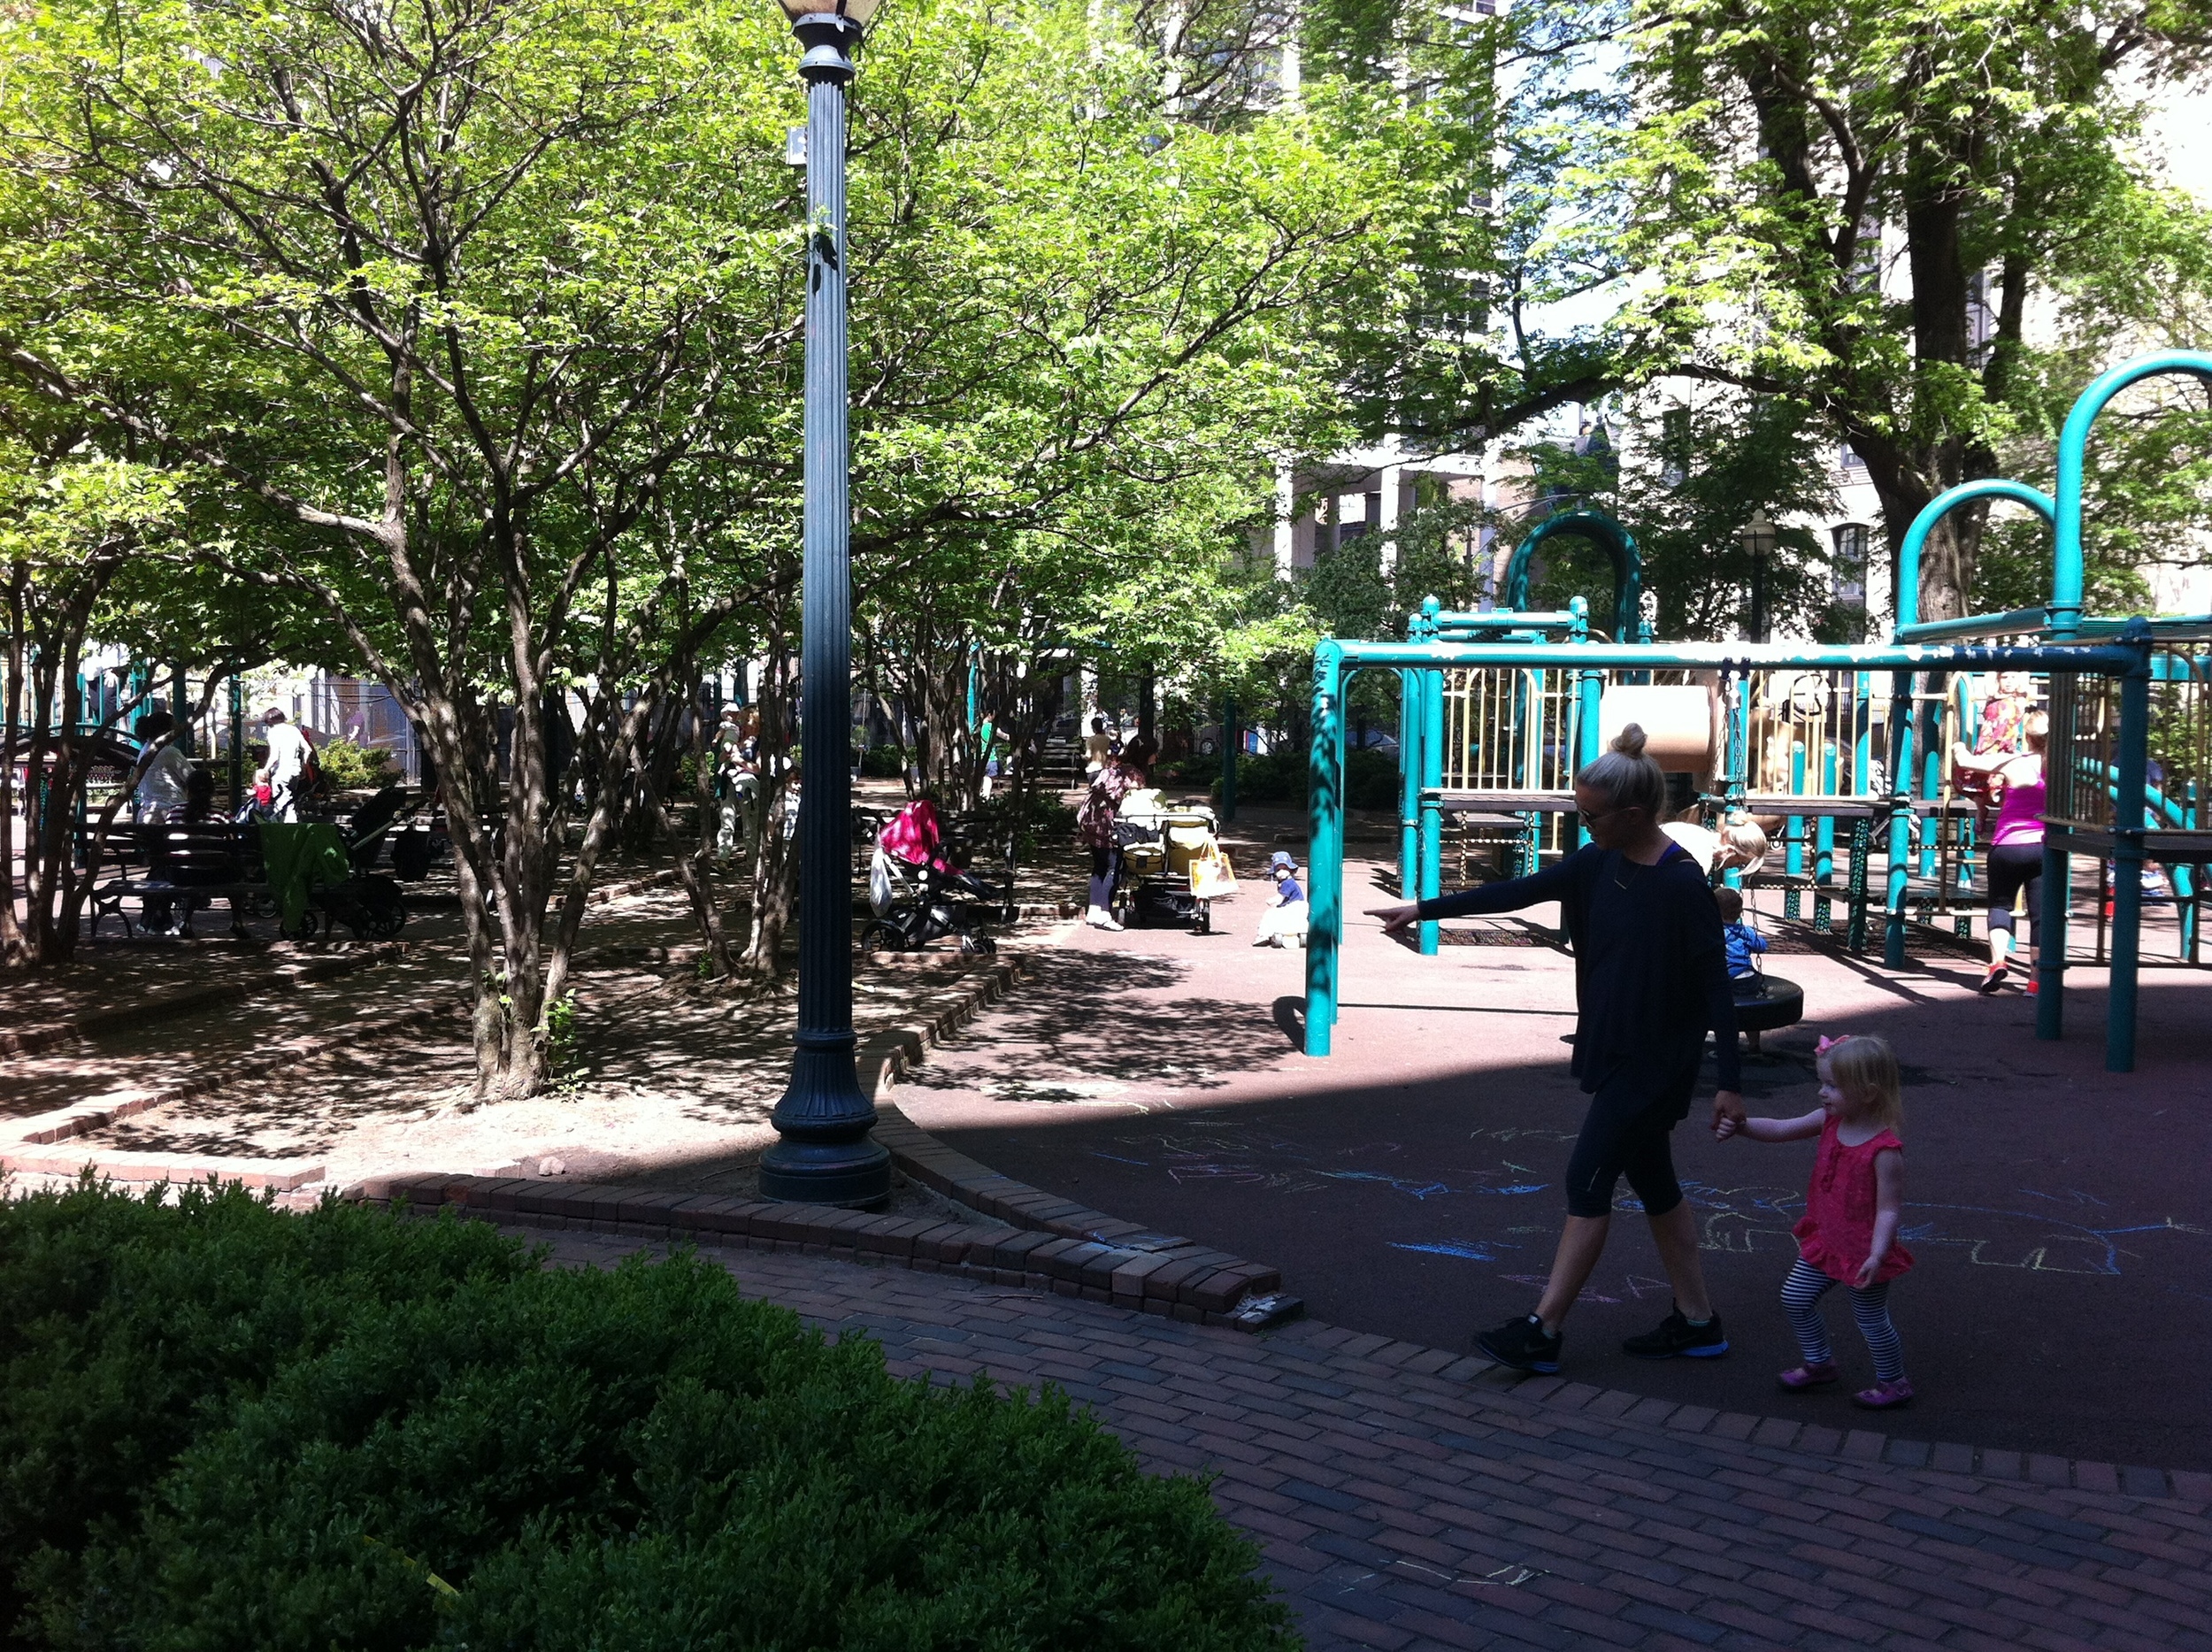 This well-treed playground in Chicago'sGold Coast community attracted dozens of families mid-week, mid-day in April.